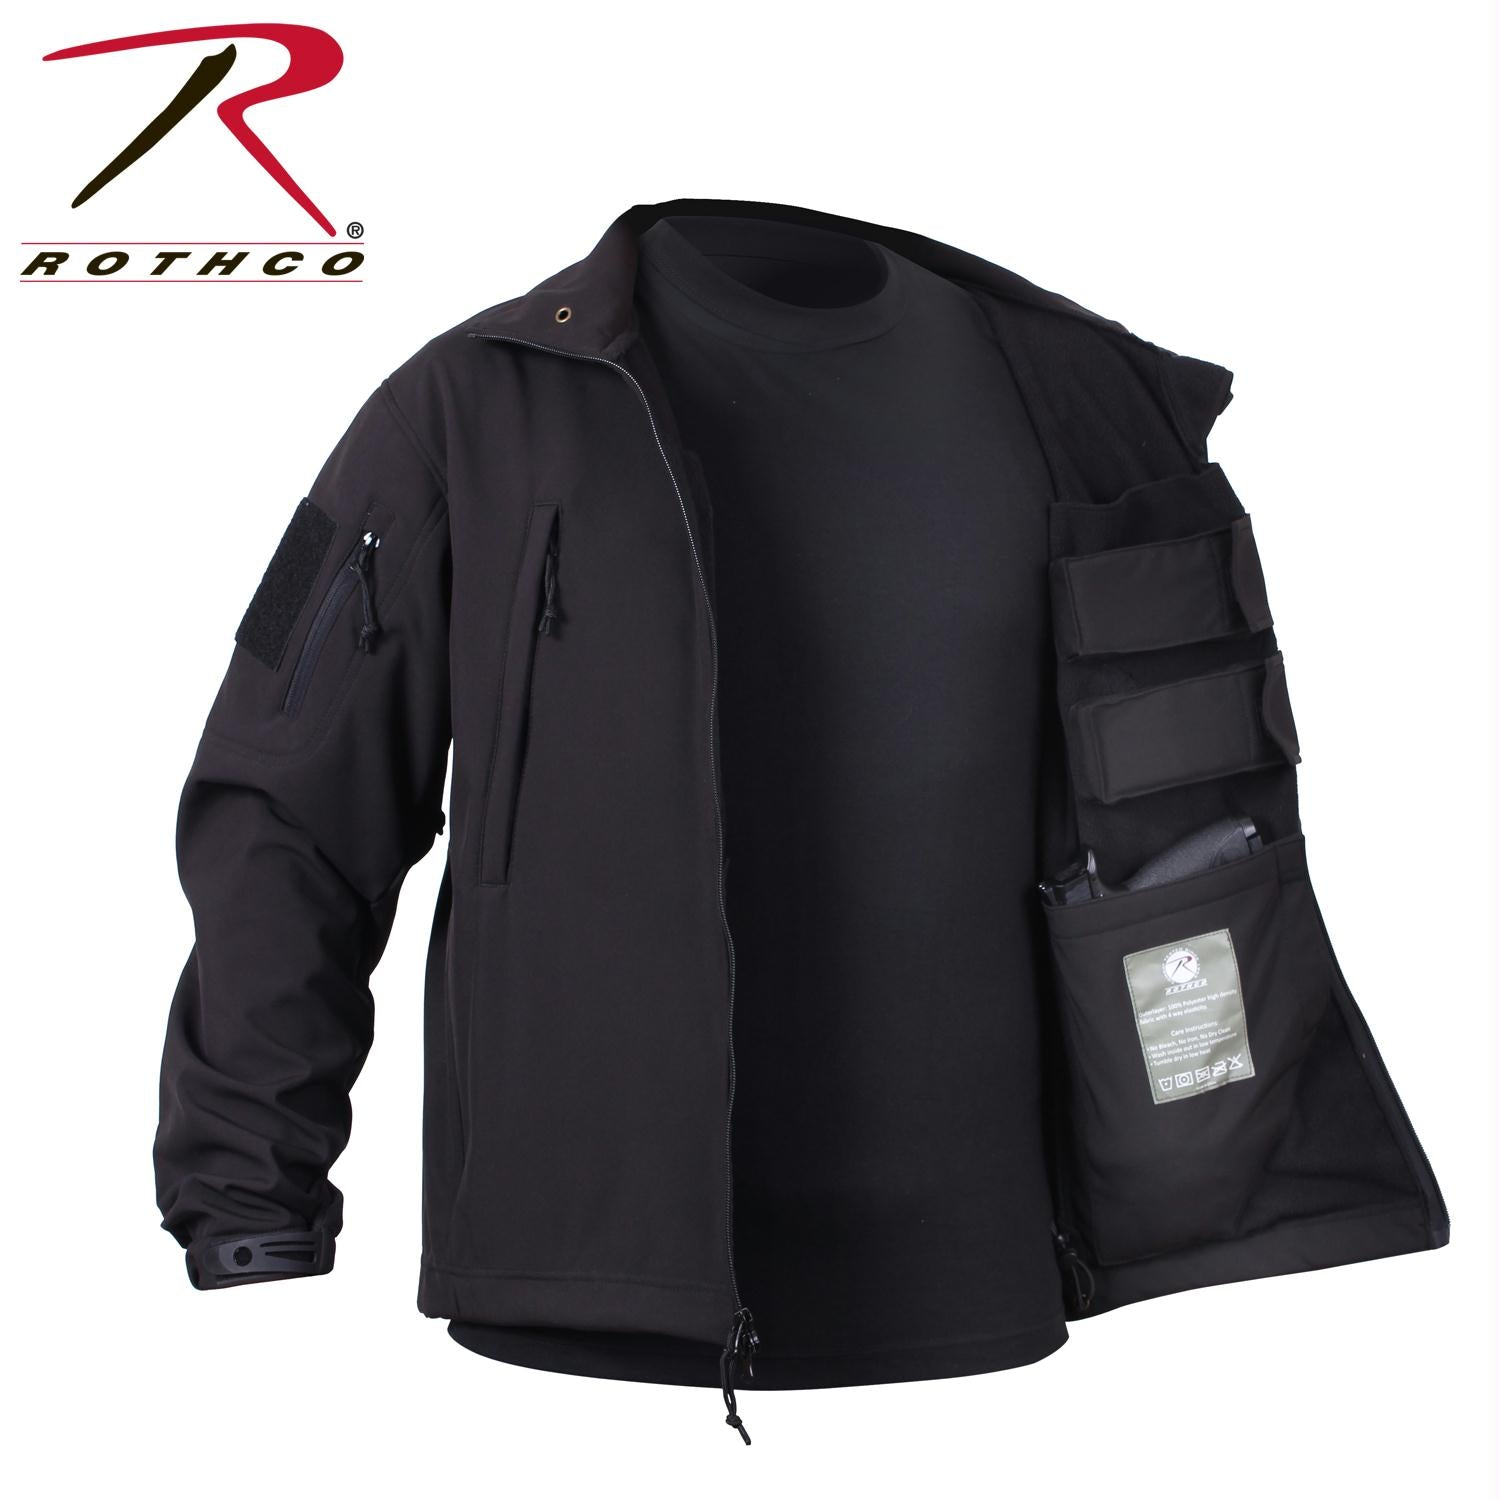 Rothco Concealed Carry Soft Shell Jacket - Black / XL